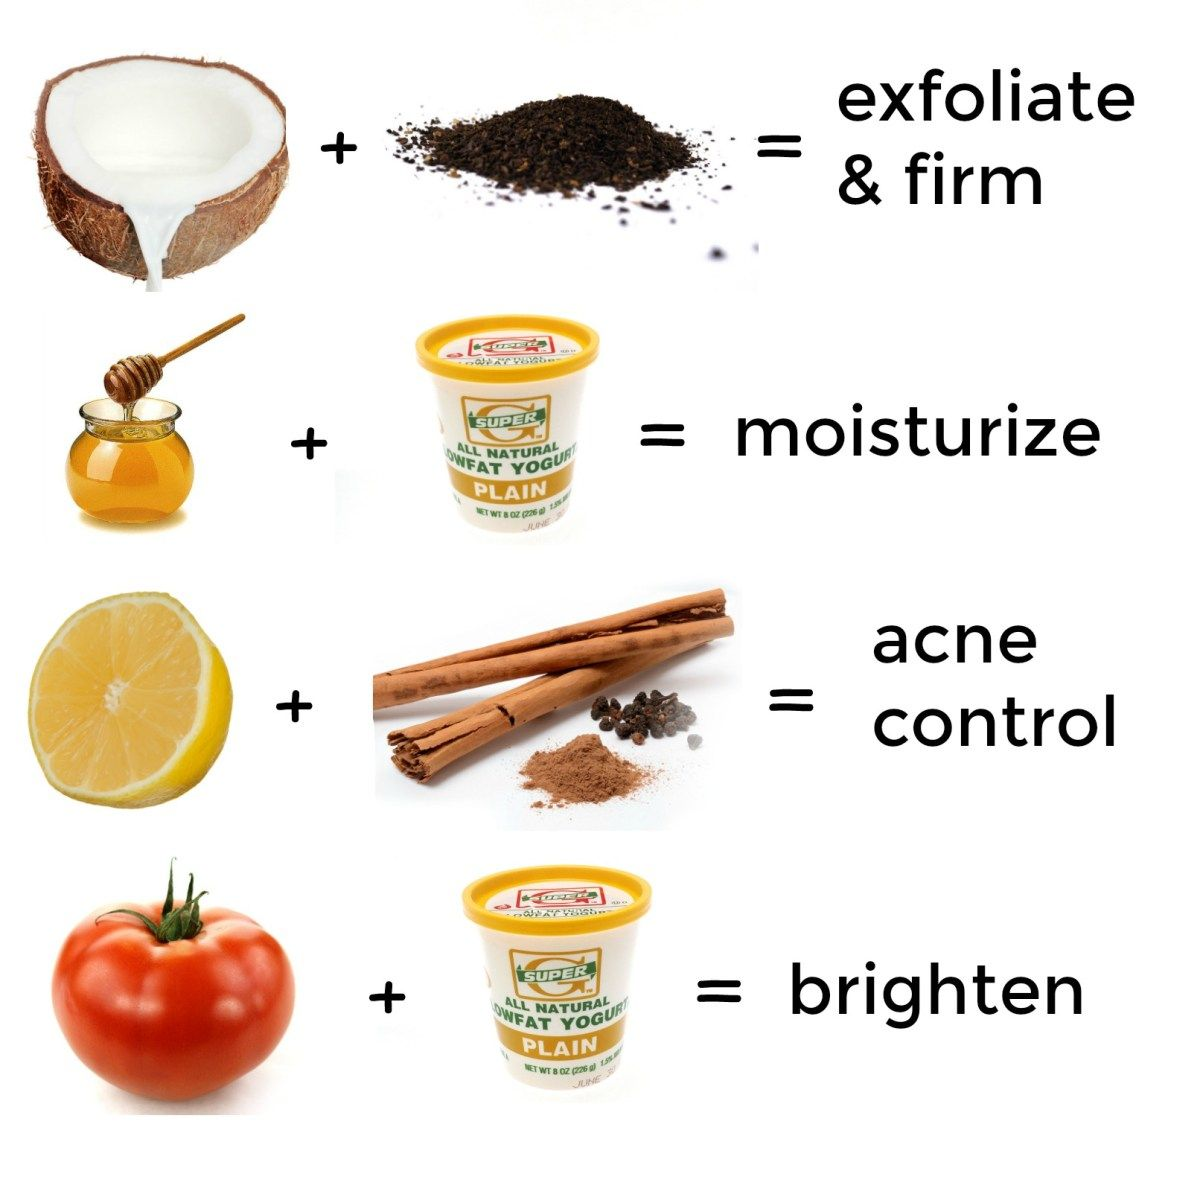 homemade face mask for exfoliating, moisturising, acne control and